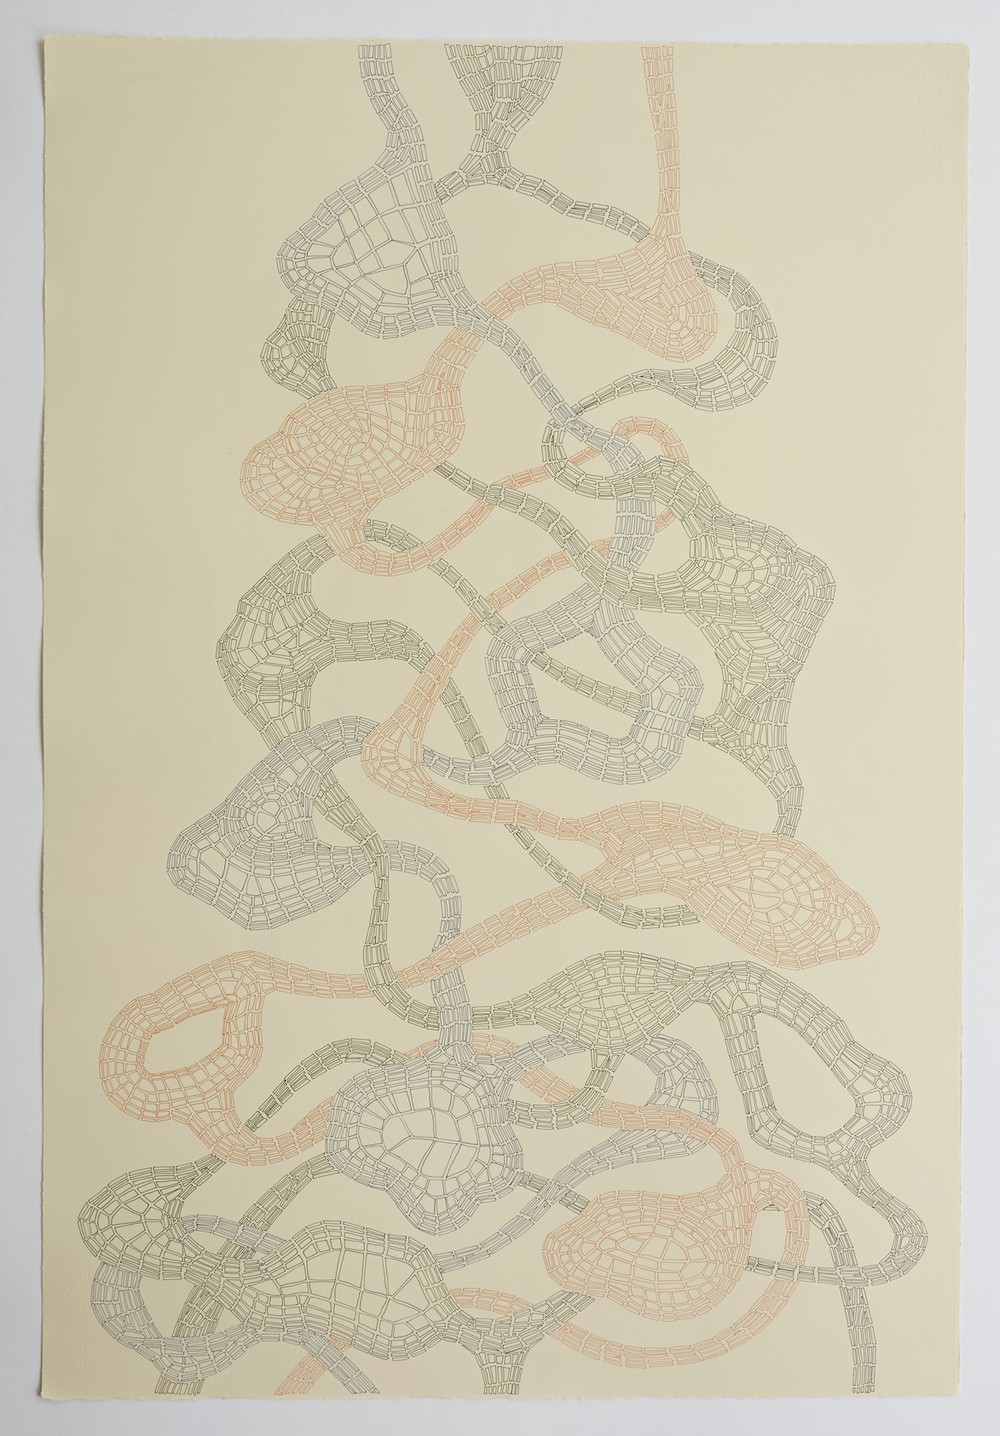 Untitled (Tied up), 2013